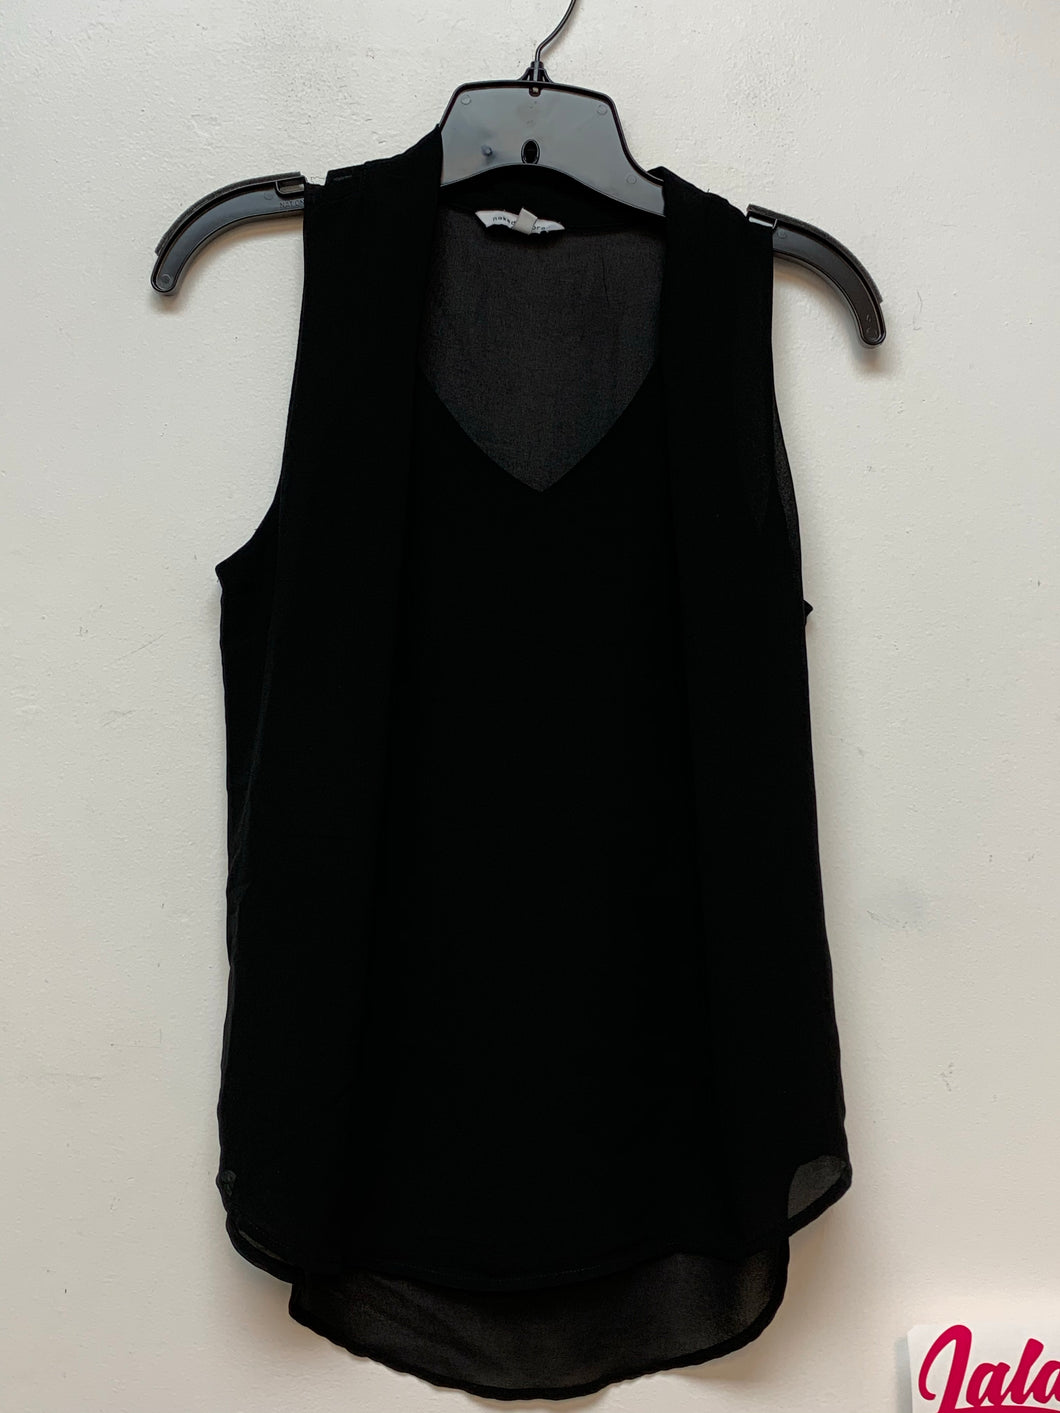 Naked Zebra Sleeveless Top - Black